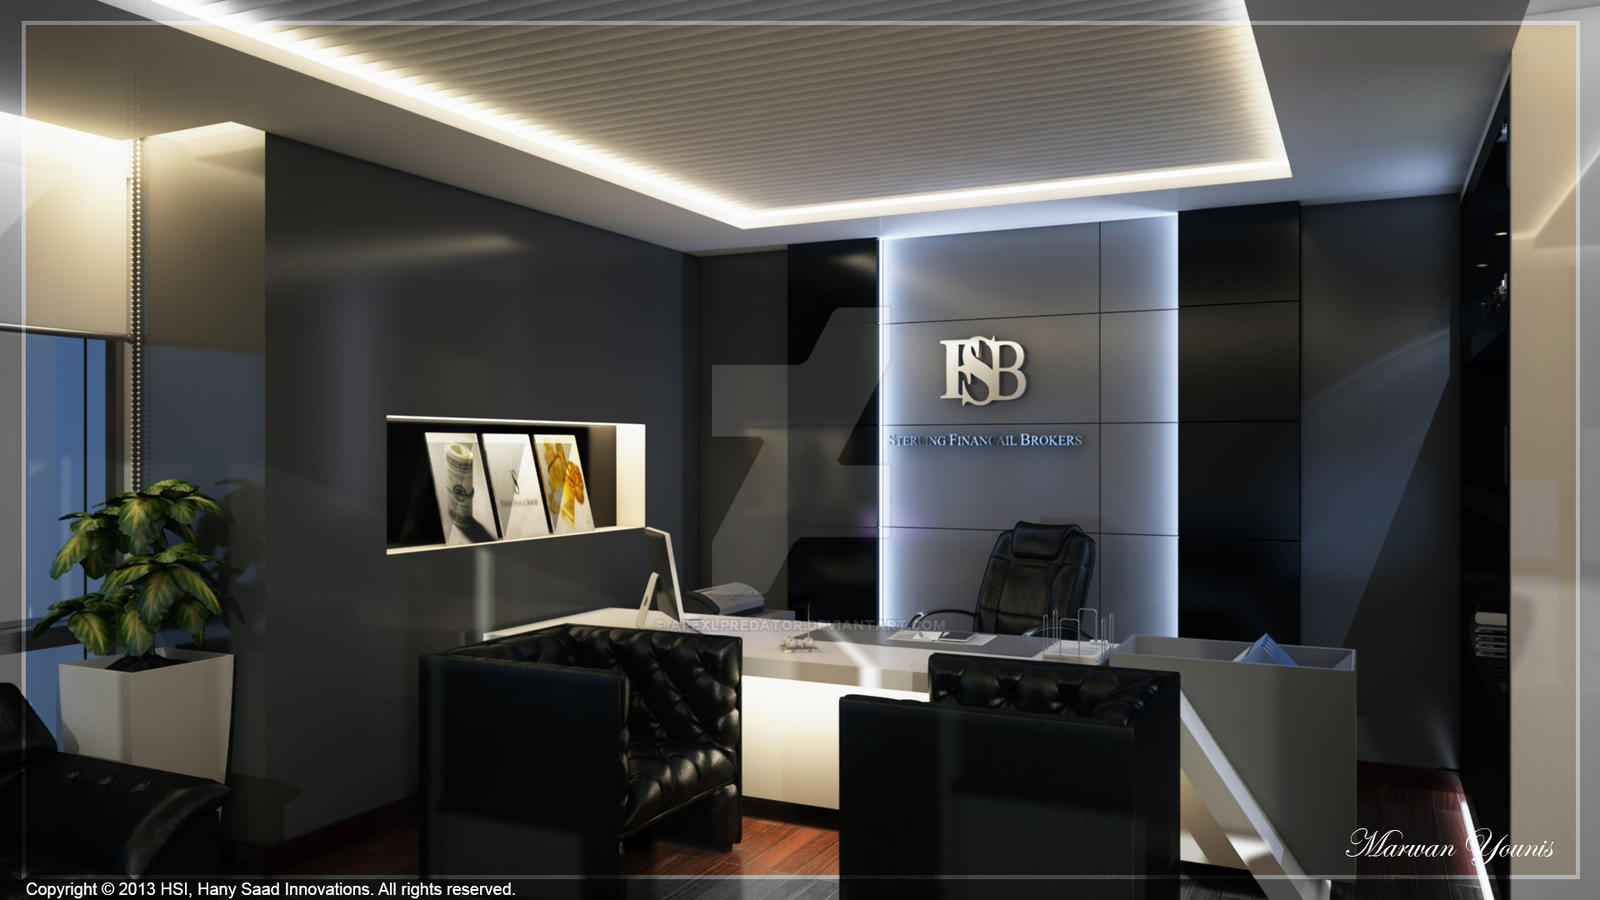 Ceo Office 03 By Apexlpredator On Deviantart